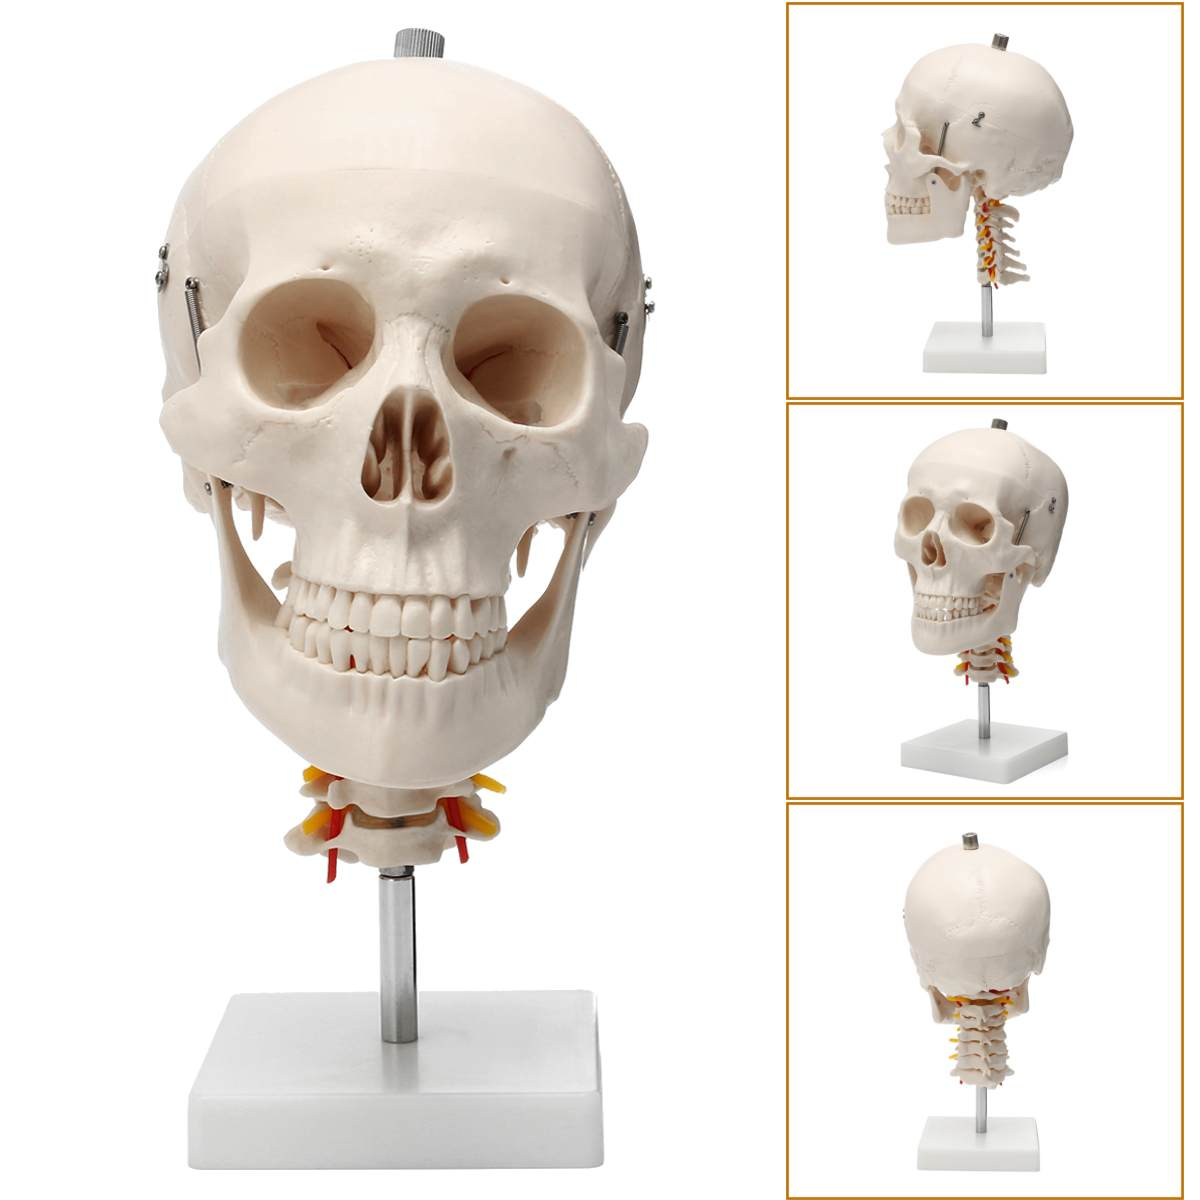 1:1 Life Size Human Skull Anatomical Anatomy Skull Model Cervical Spine Head Skeleton School Educational Medical Teaching Model